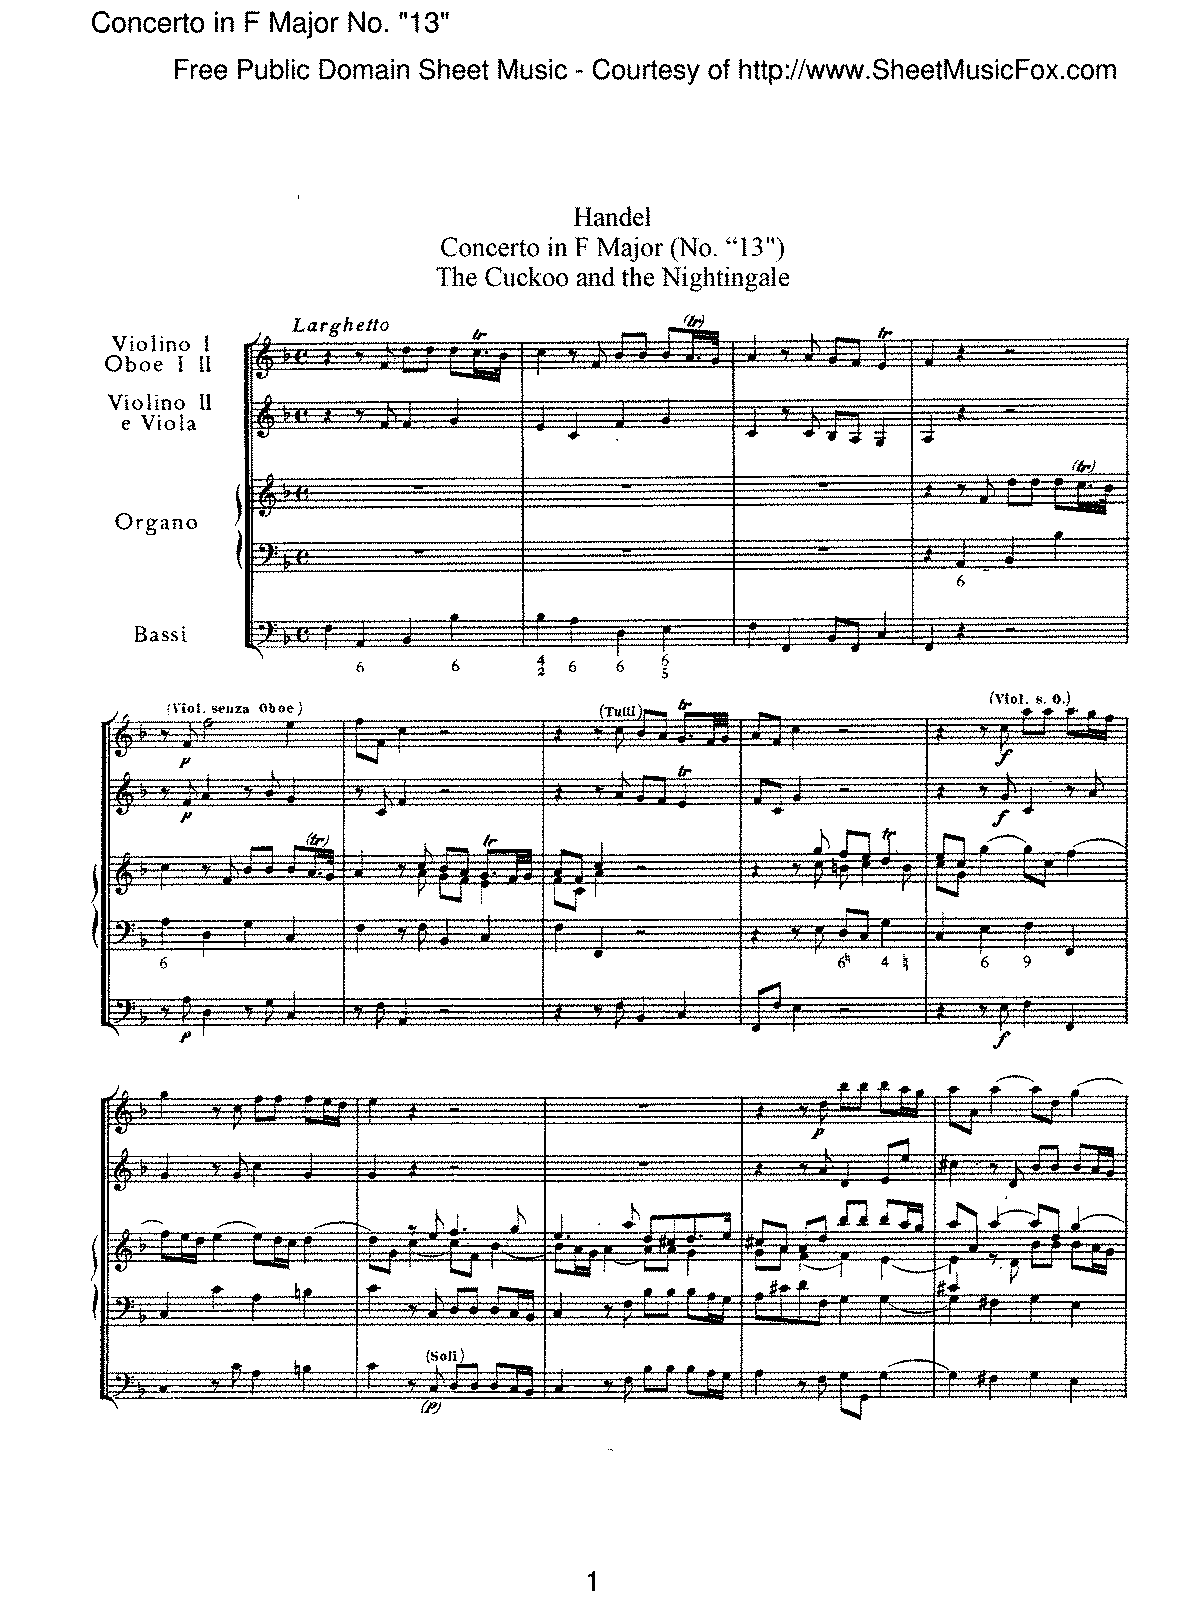 Handel - Concerto in F major, No '13'.pdf